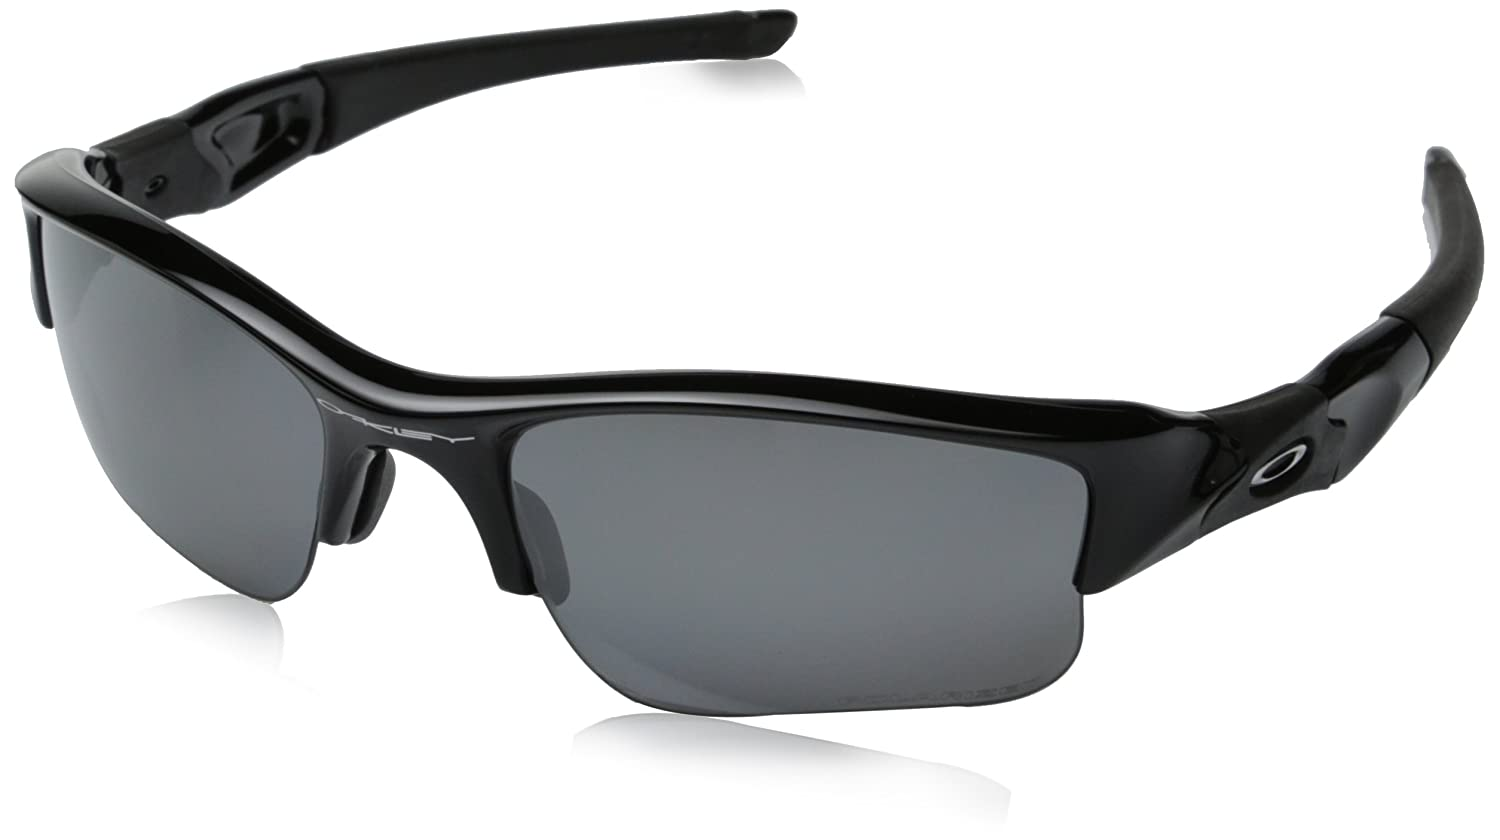 oakley flak jacket xlj polarised  amazon: oakley men's flak jacket xlj sunglasses,jet black frame/black iridium,one size: oakley: shoes